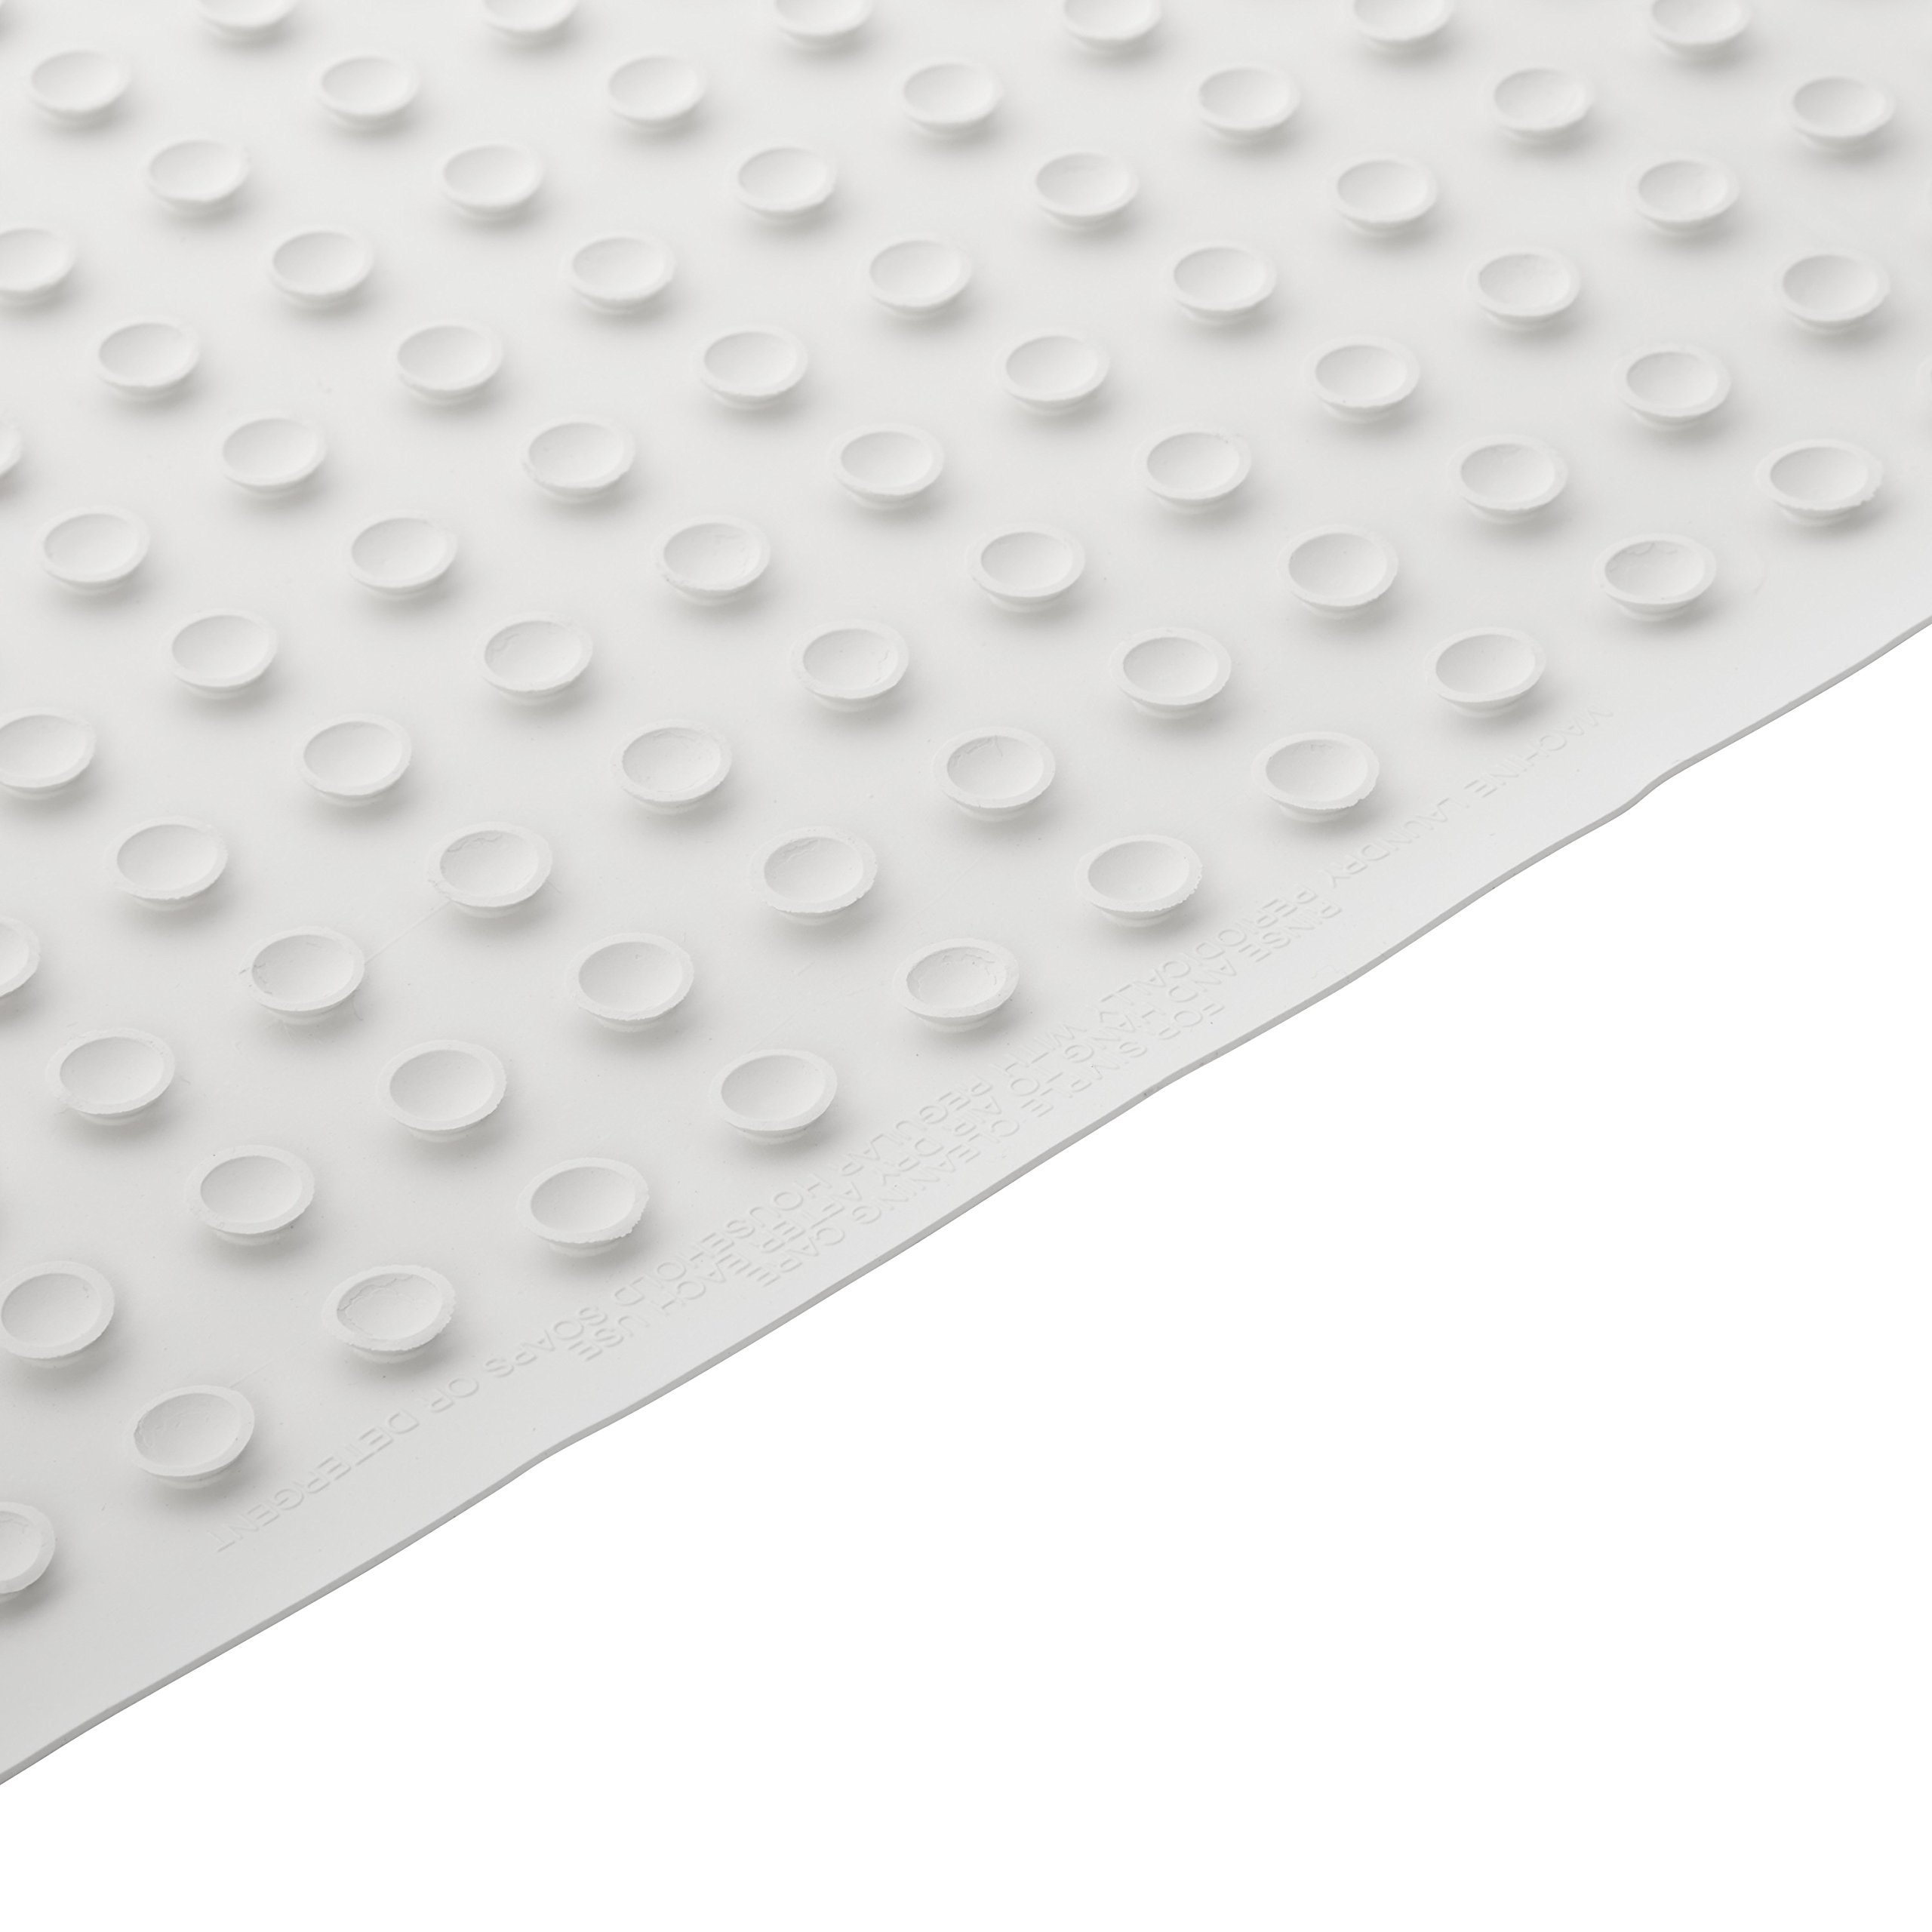 Rubbermaid Commercial Safti Grip Bath Mat Extra Large